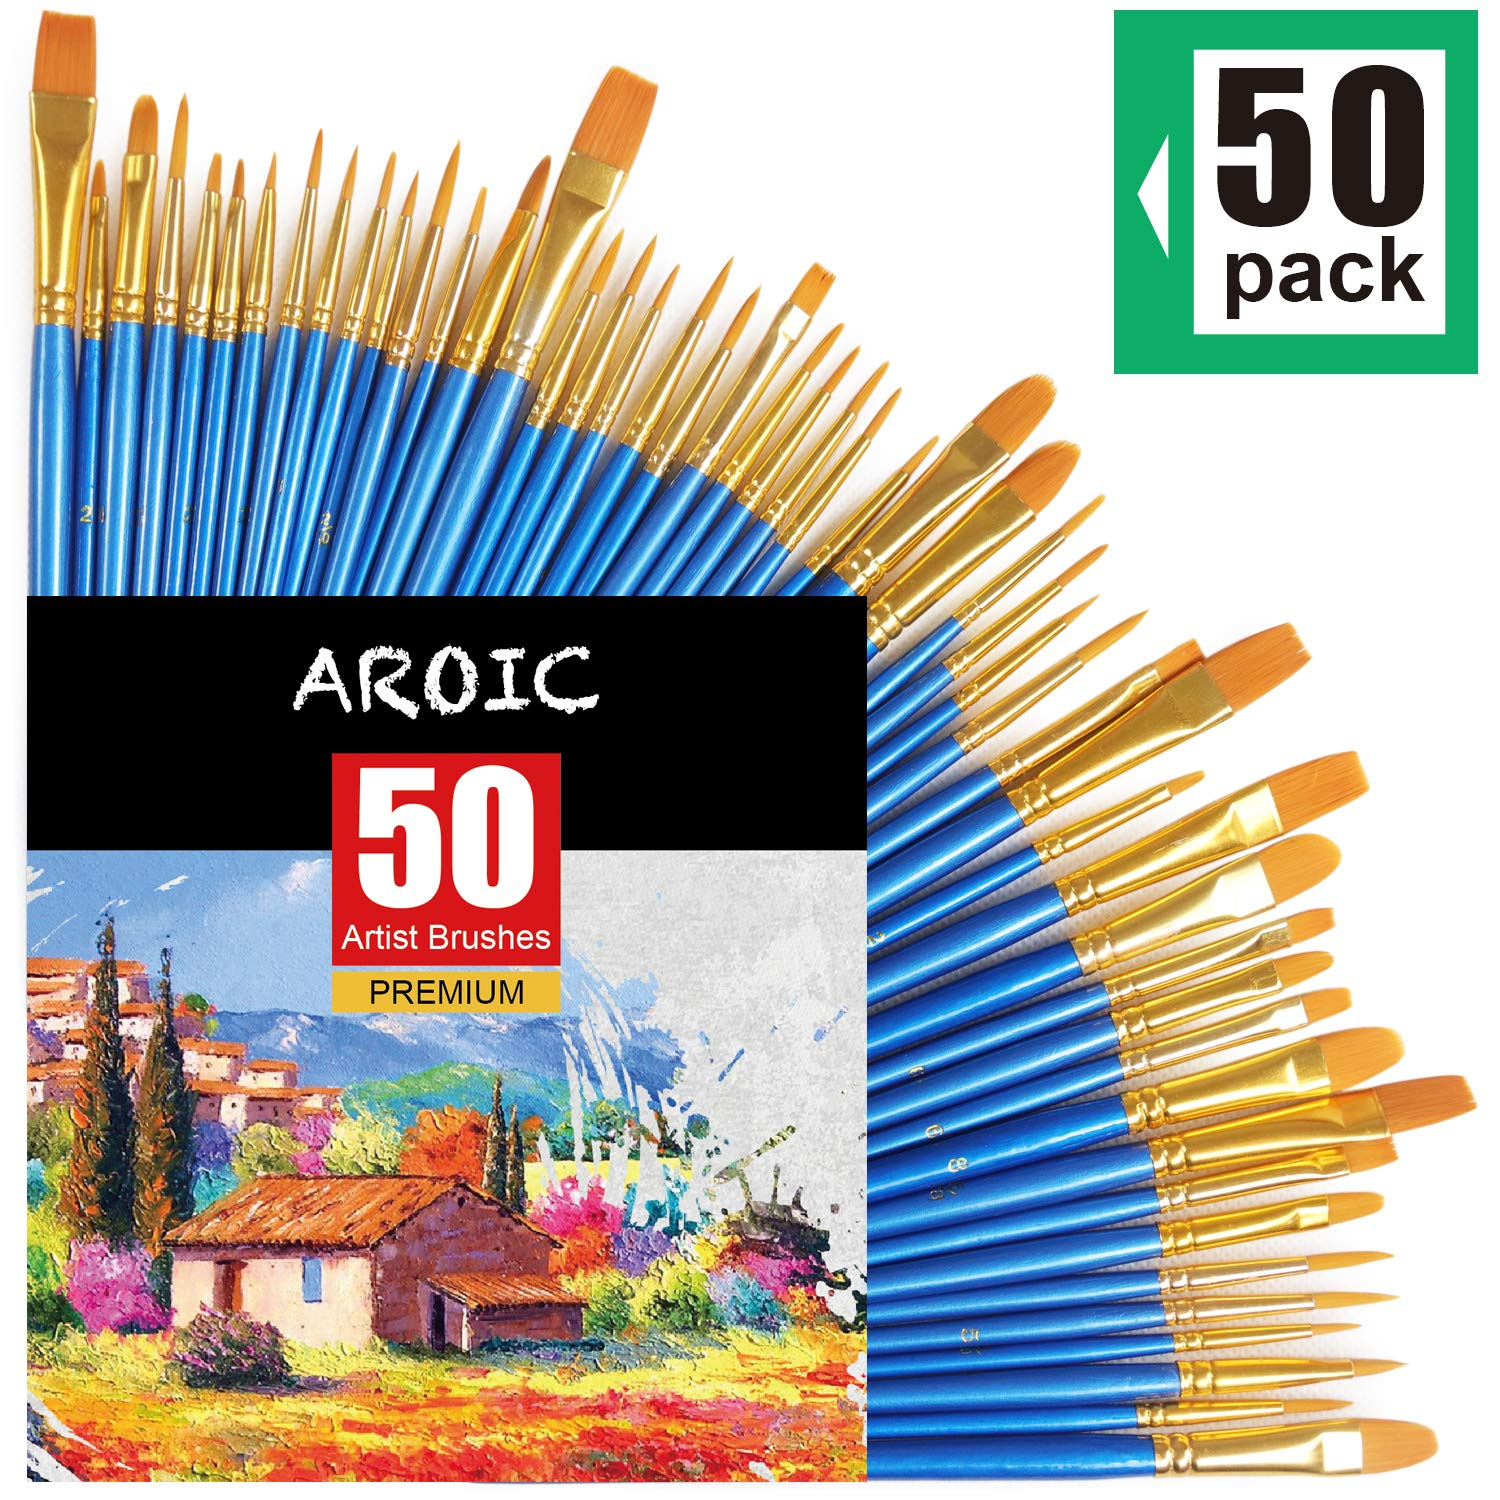 AROIC Paintbrushes Set, 50 pcs Nylon Hair Brushes for Acrylic Oil Watercolor Artist Professional Painting Kits, Pack by AROIC